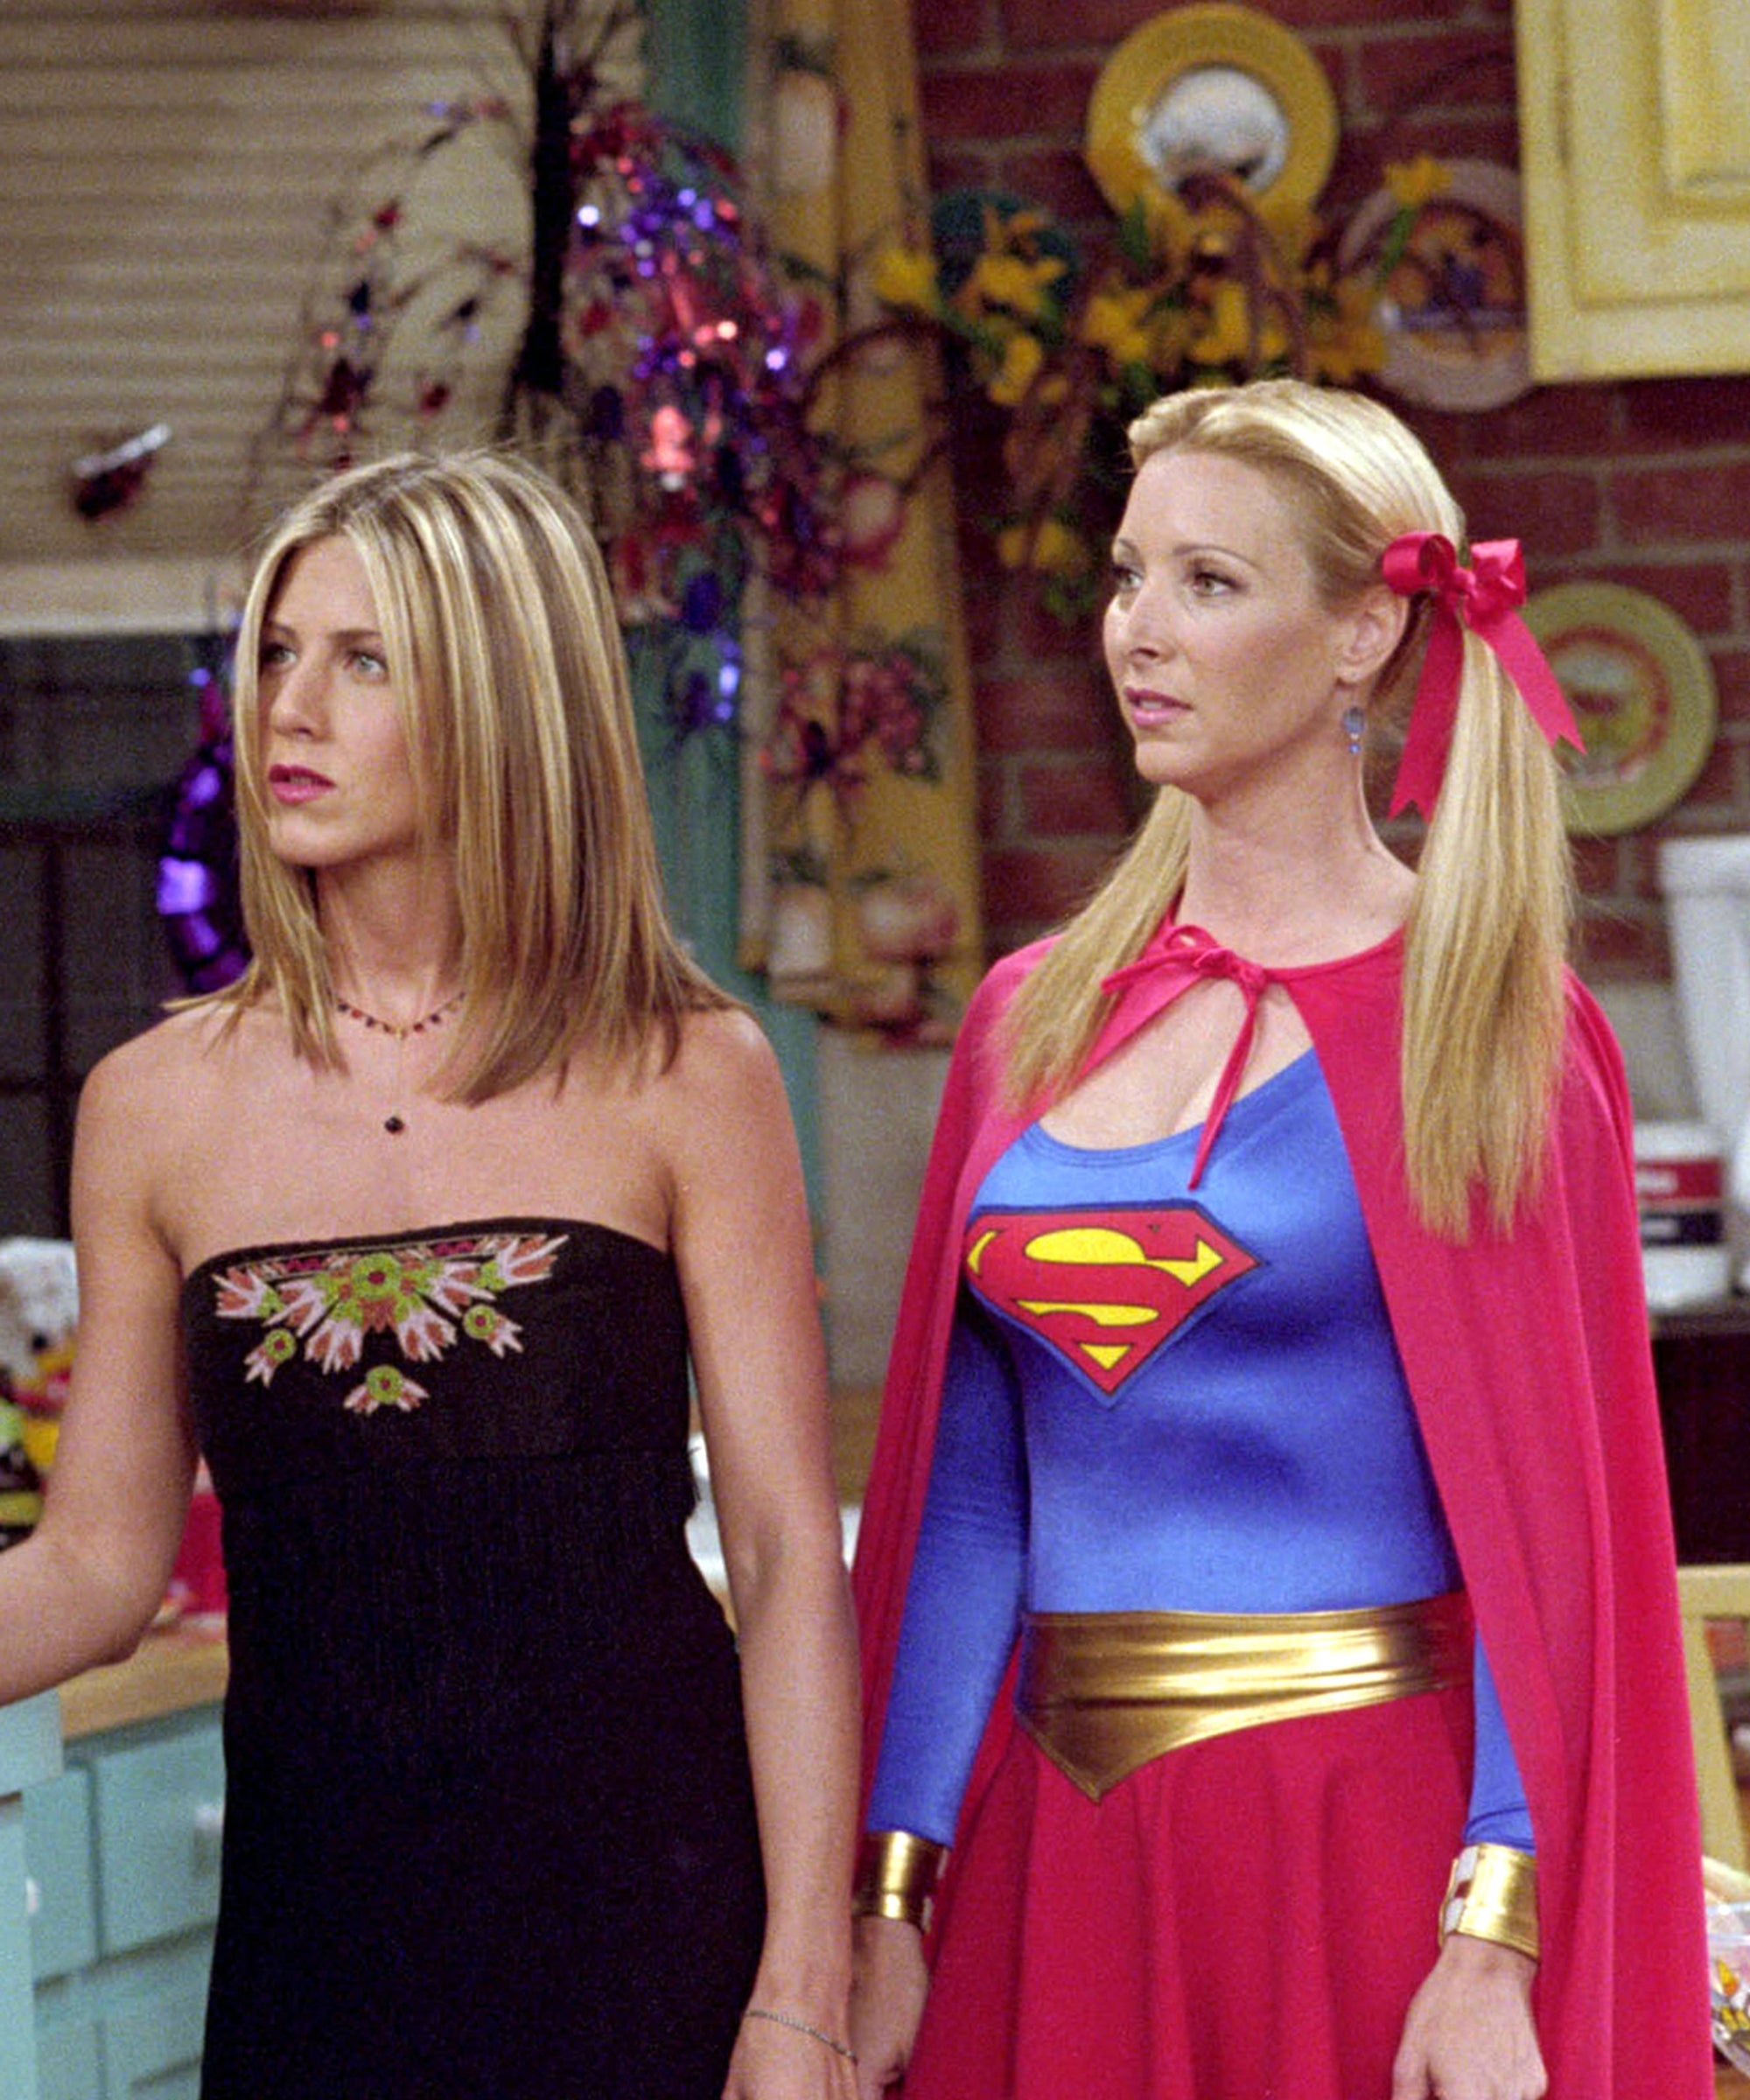 Friends' Halloween Costumes, From Best To…What Is That?